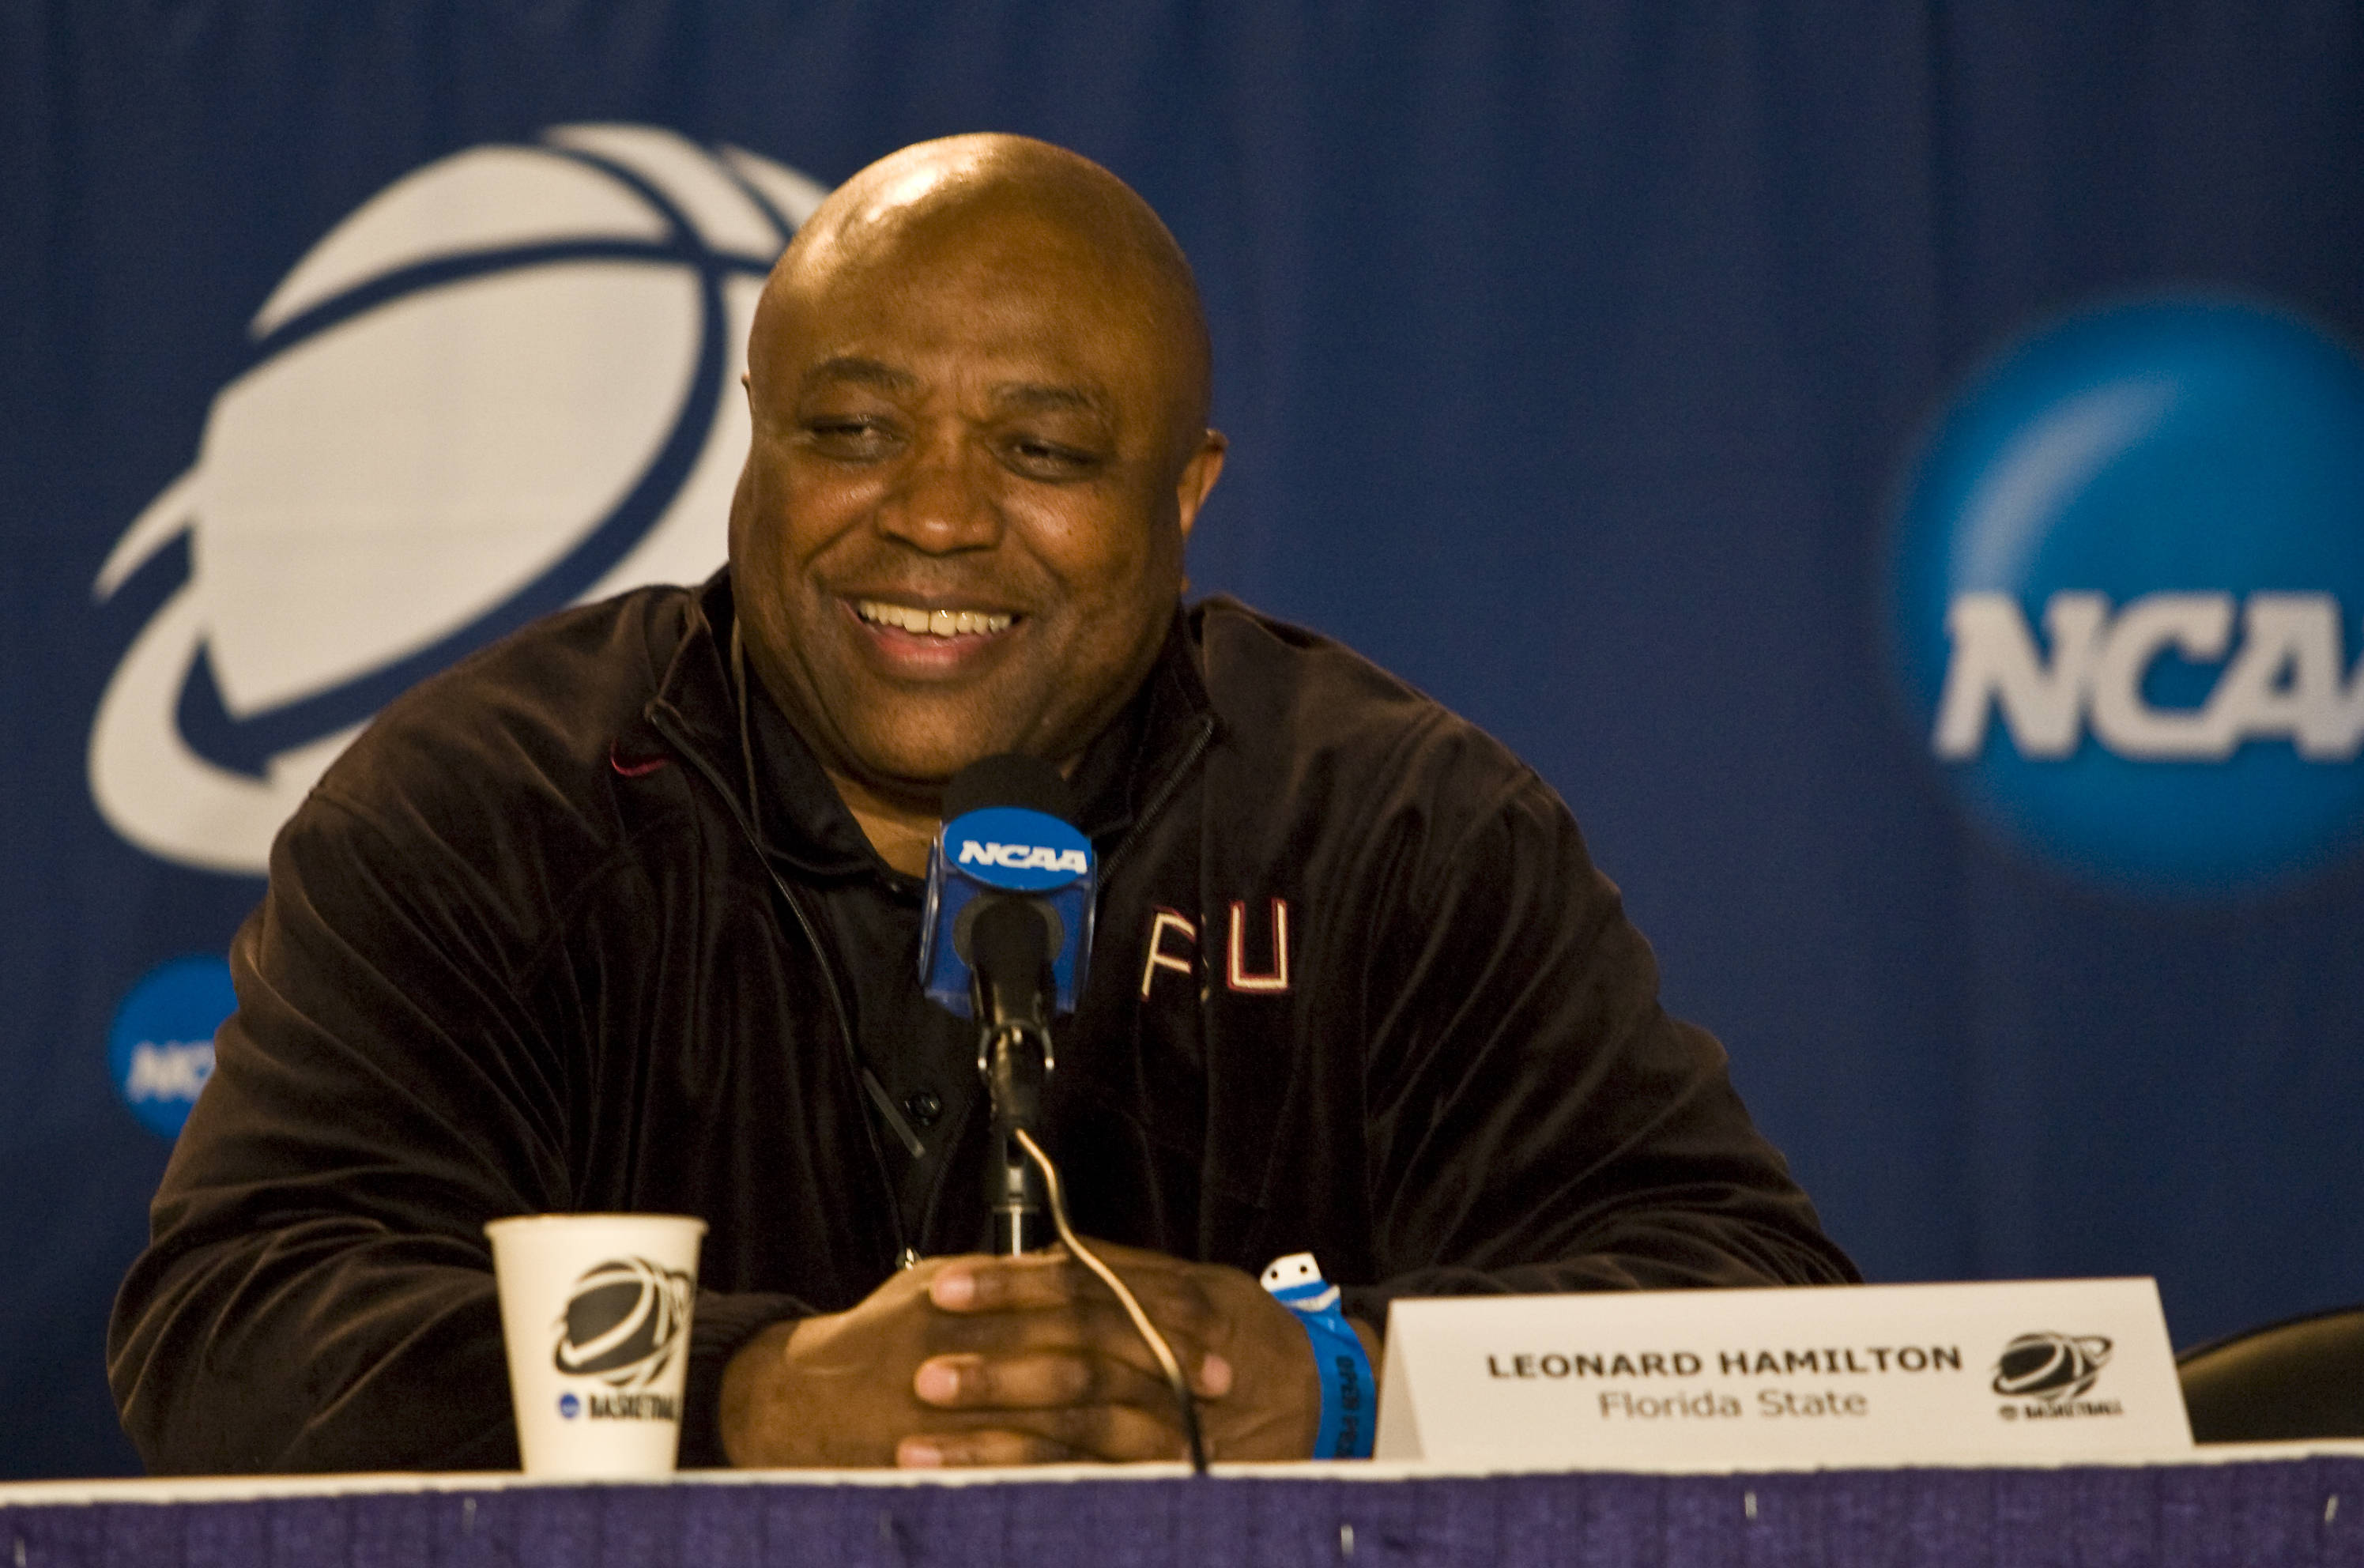 Head Coach Leonard Hamilton shares a laugh with the media at the NCAA pre-tournament press conference.